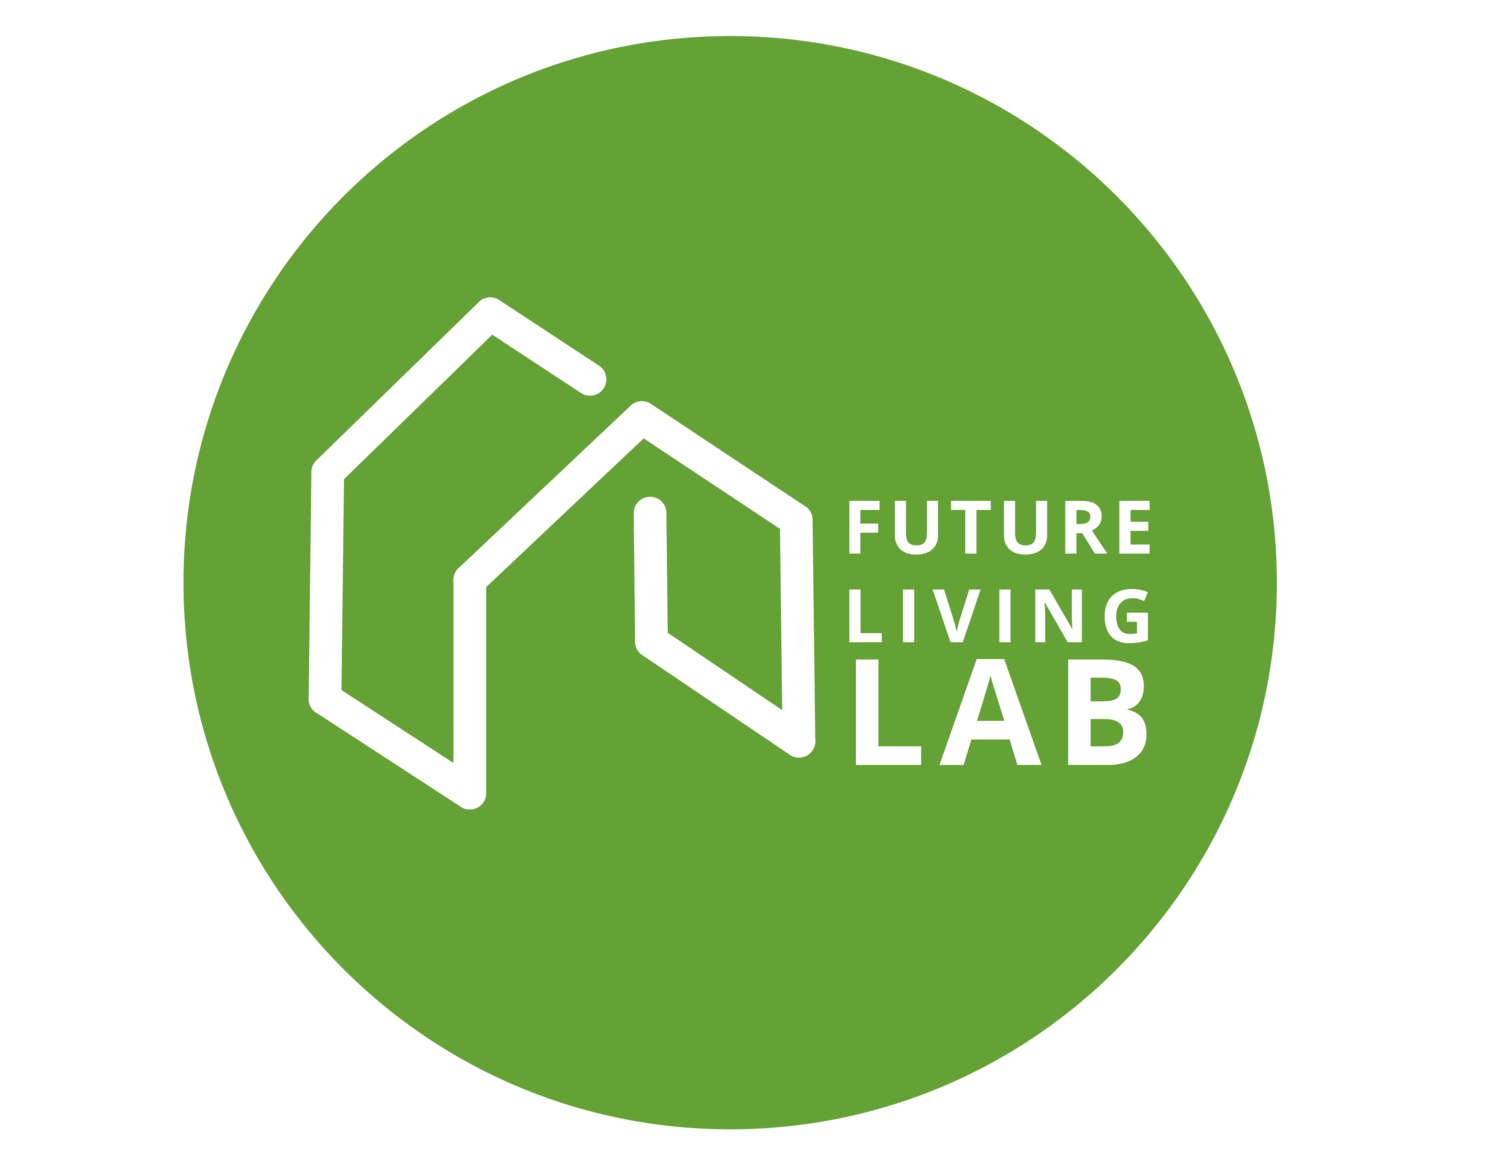 Future Living Lab